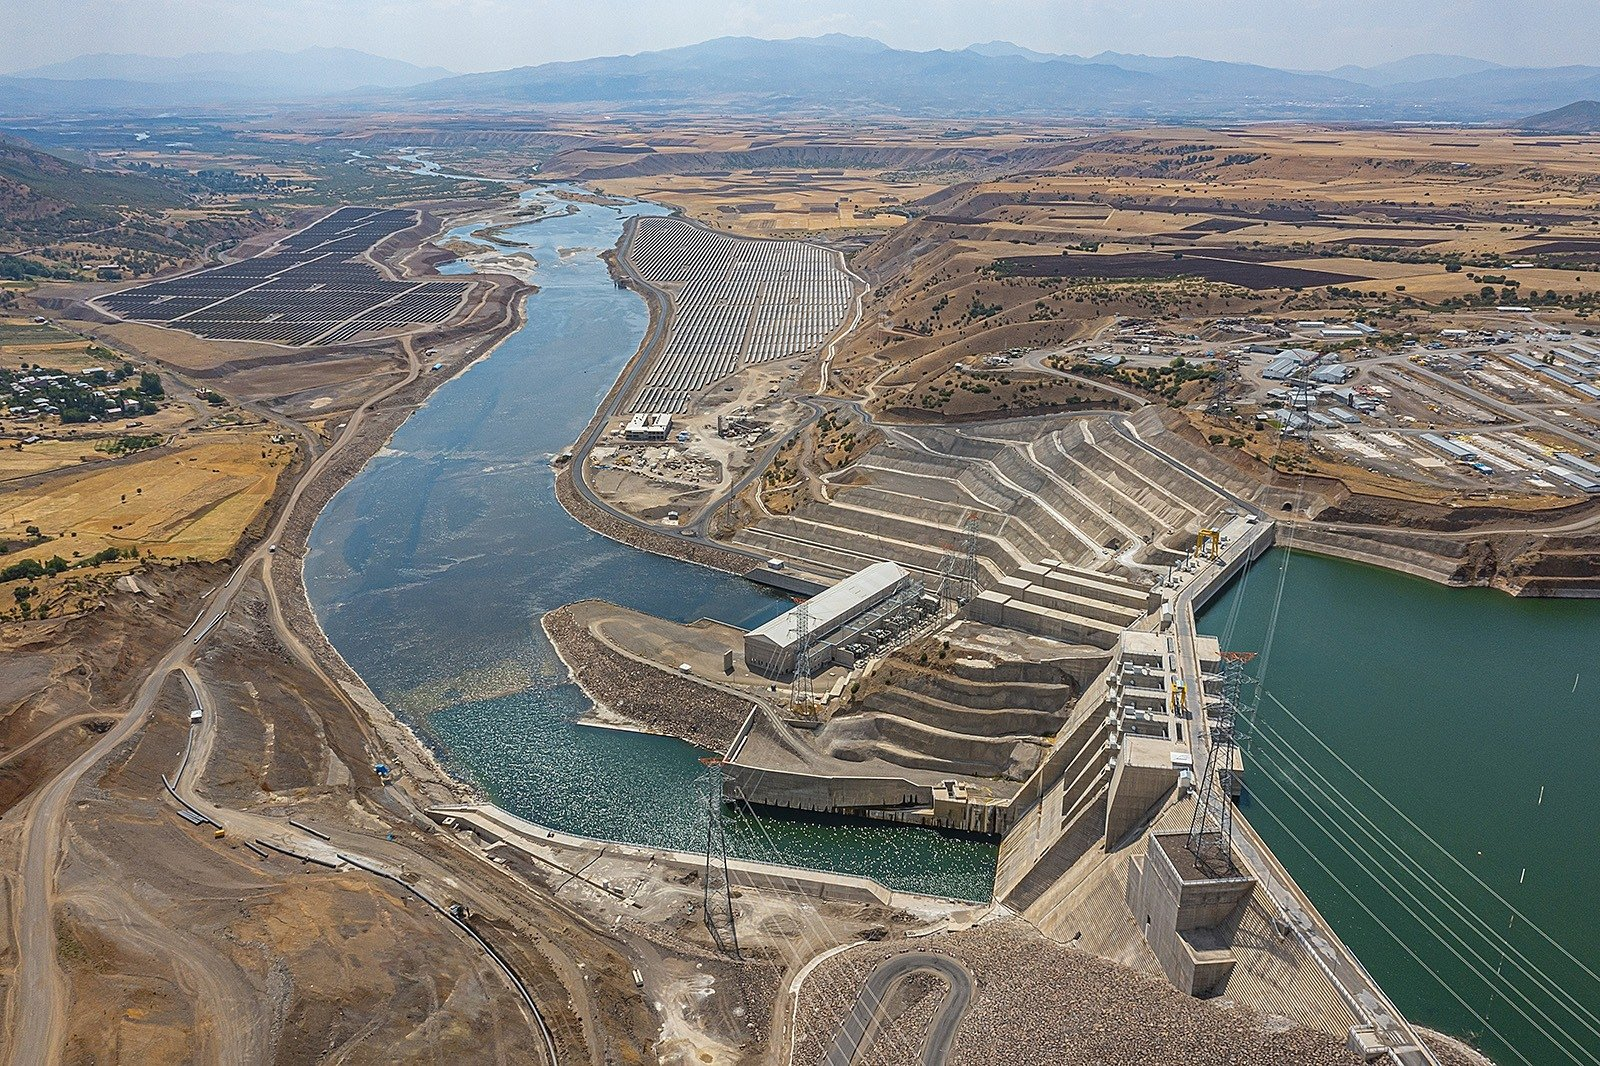 A dam builtover the Murat River and a hydroelectric power plant are seen in the eastern Bingöl province, Turkey, July 27, 2021. (IHA Photo)